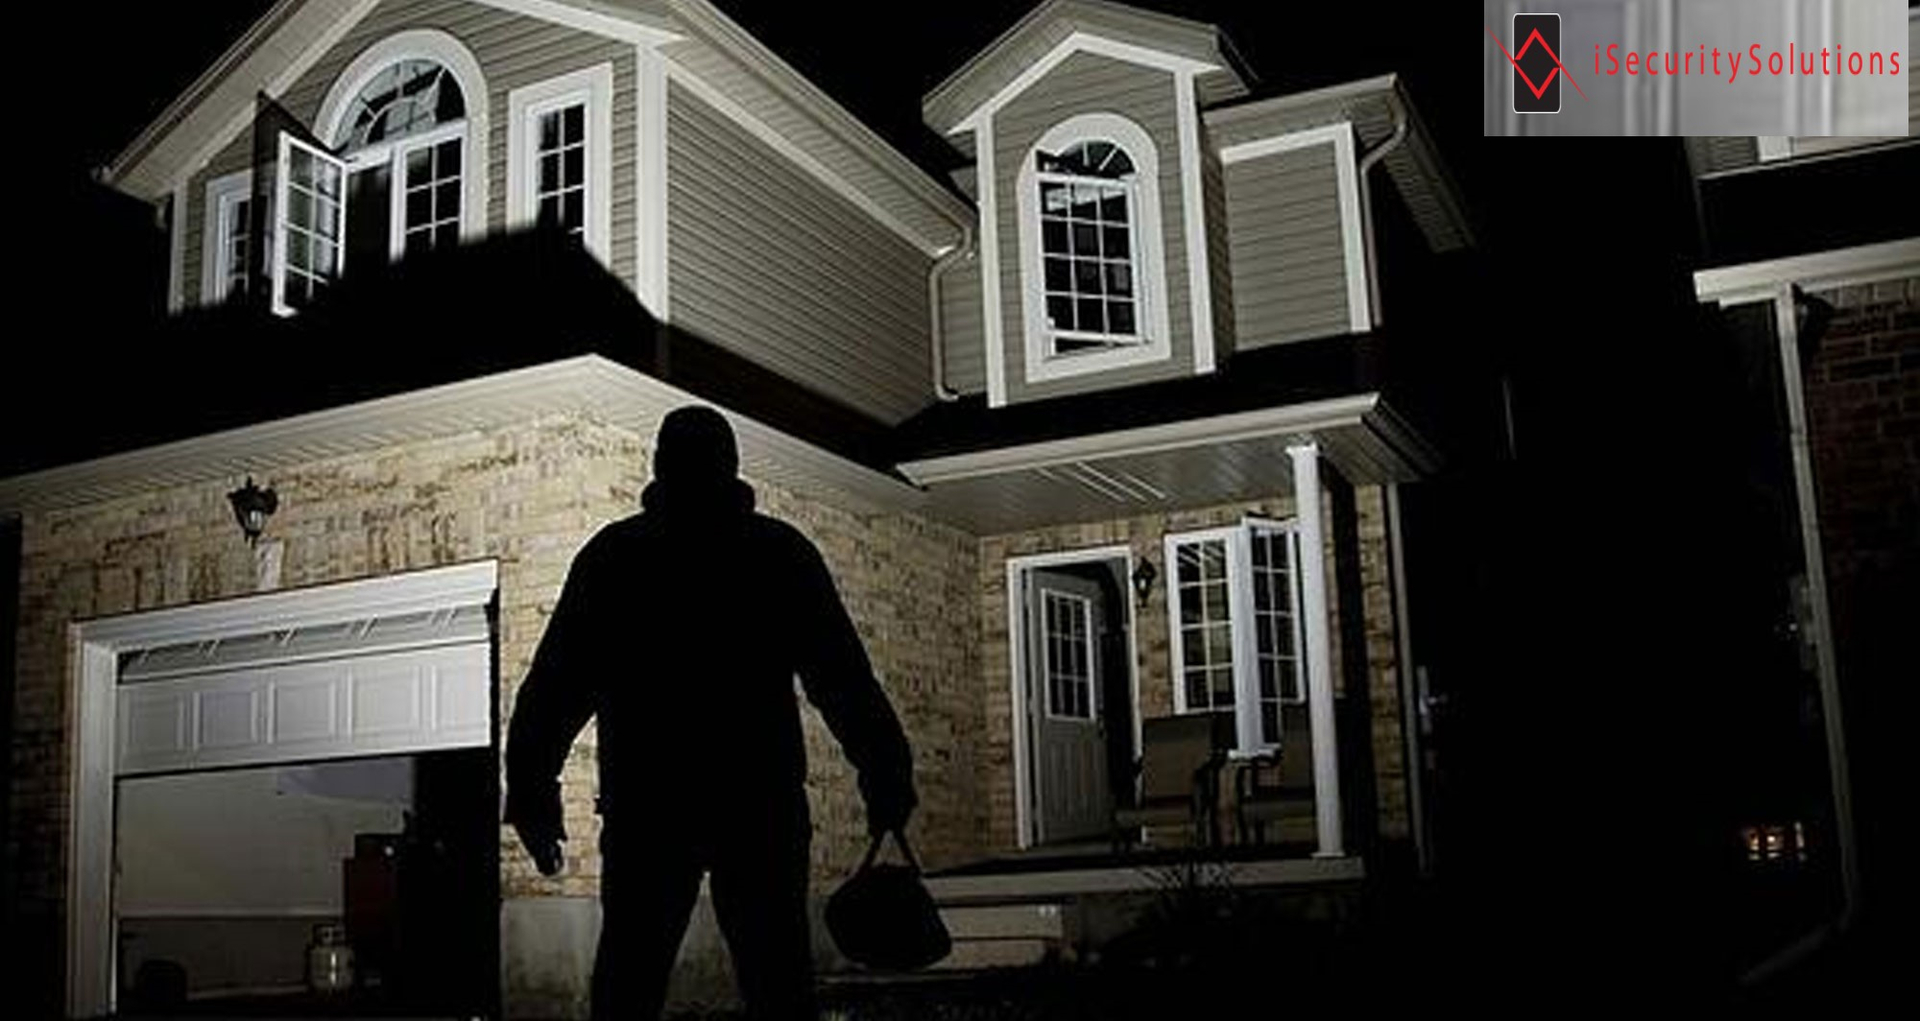 Zoom The World - security-lighting